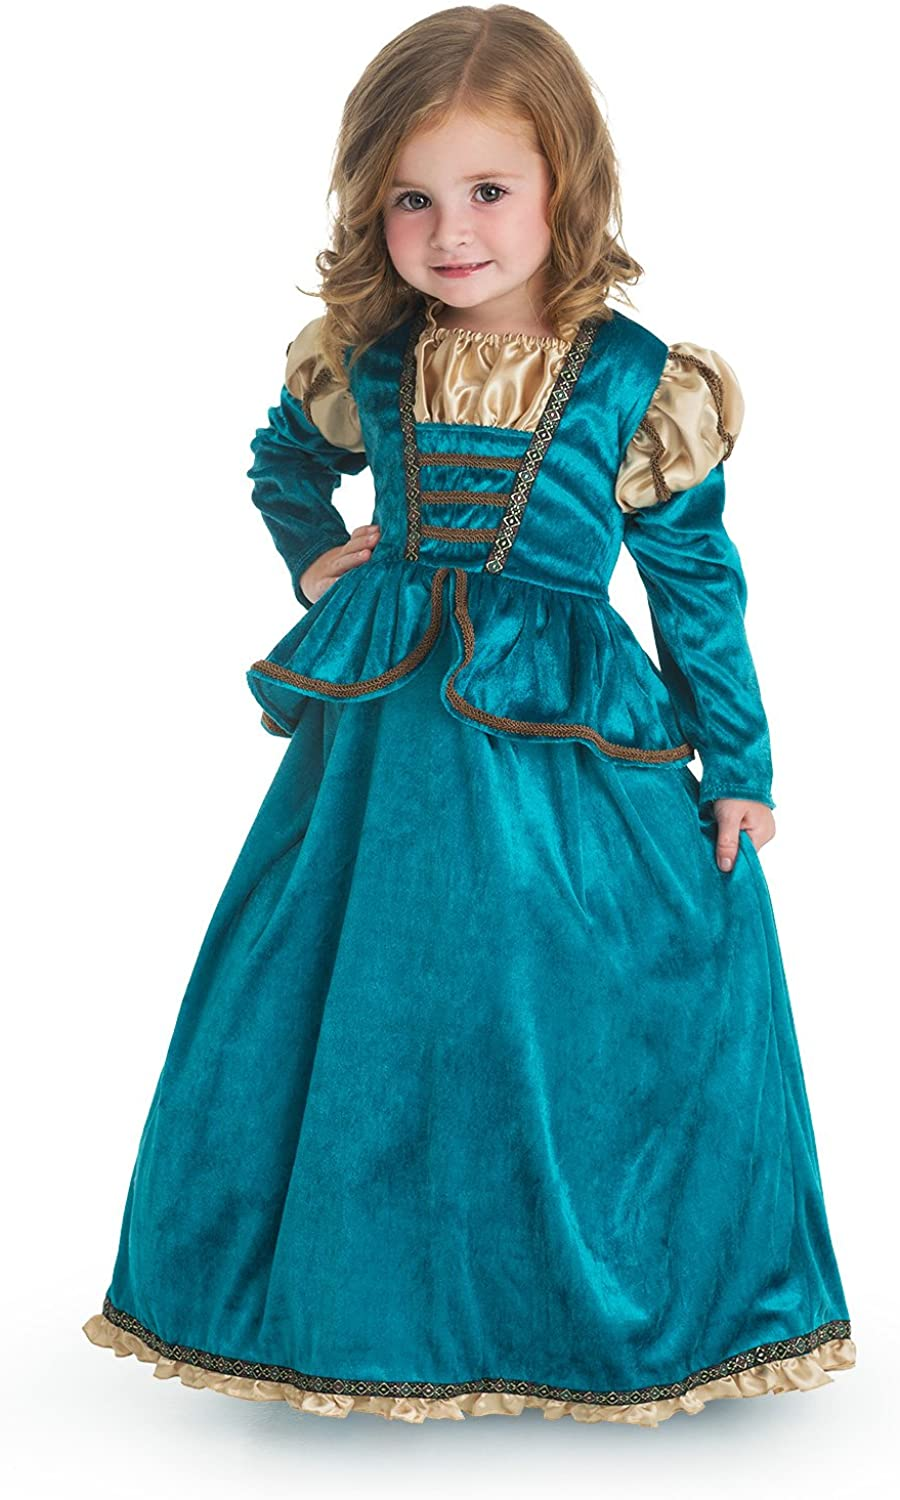 Little Adventures Medieval Princess Dress Up Costume